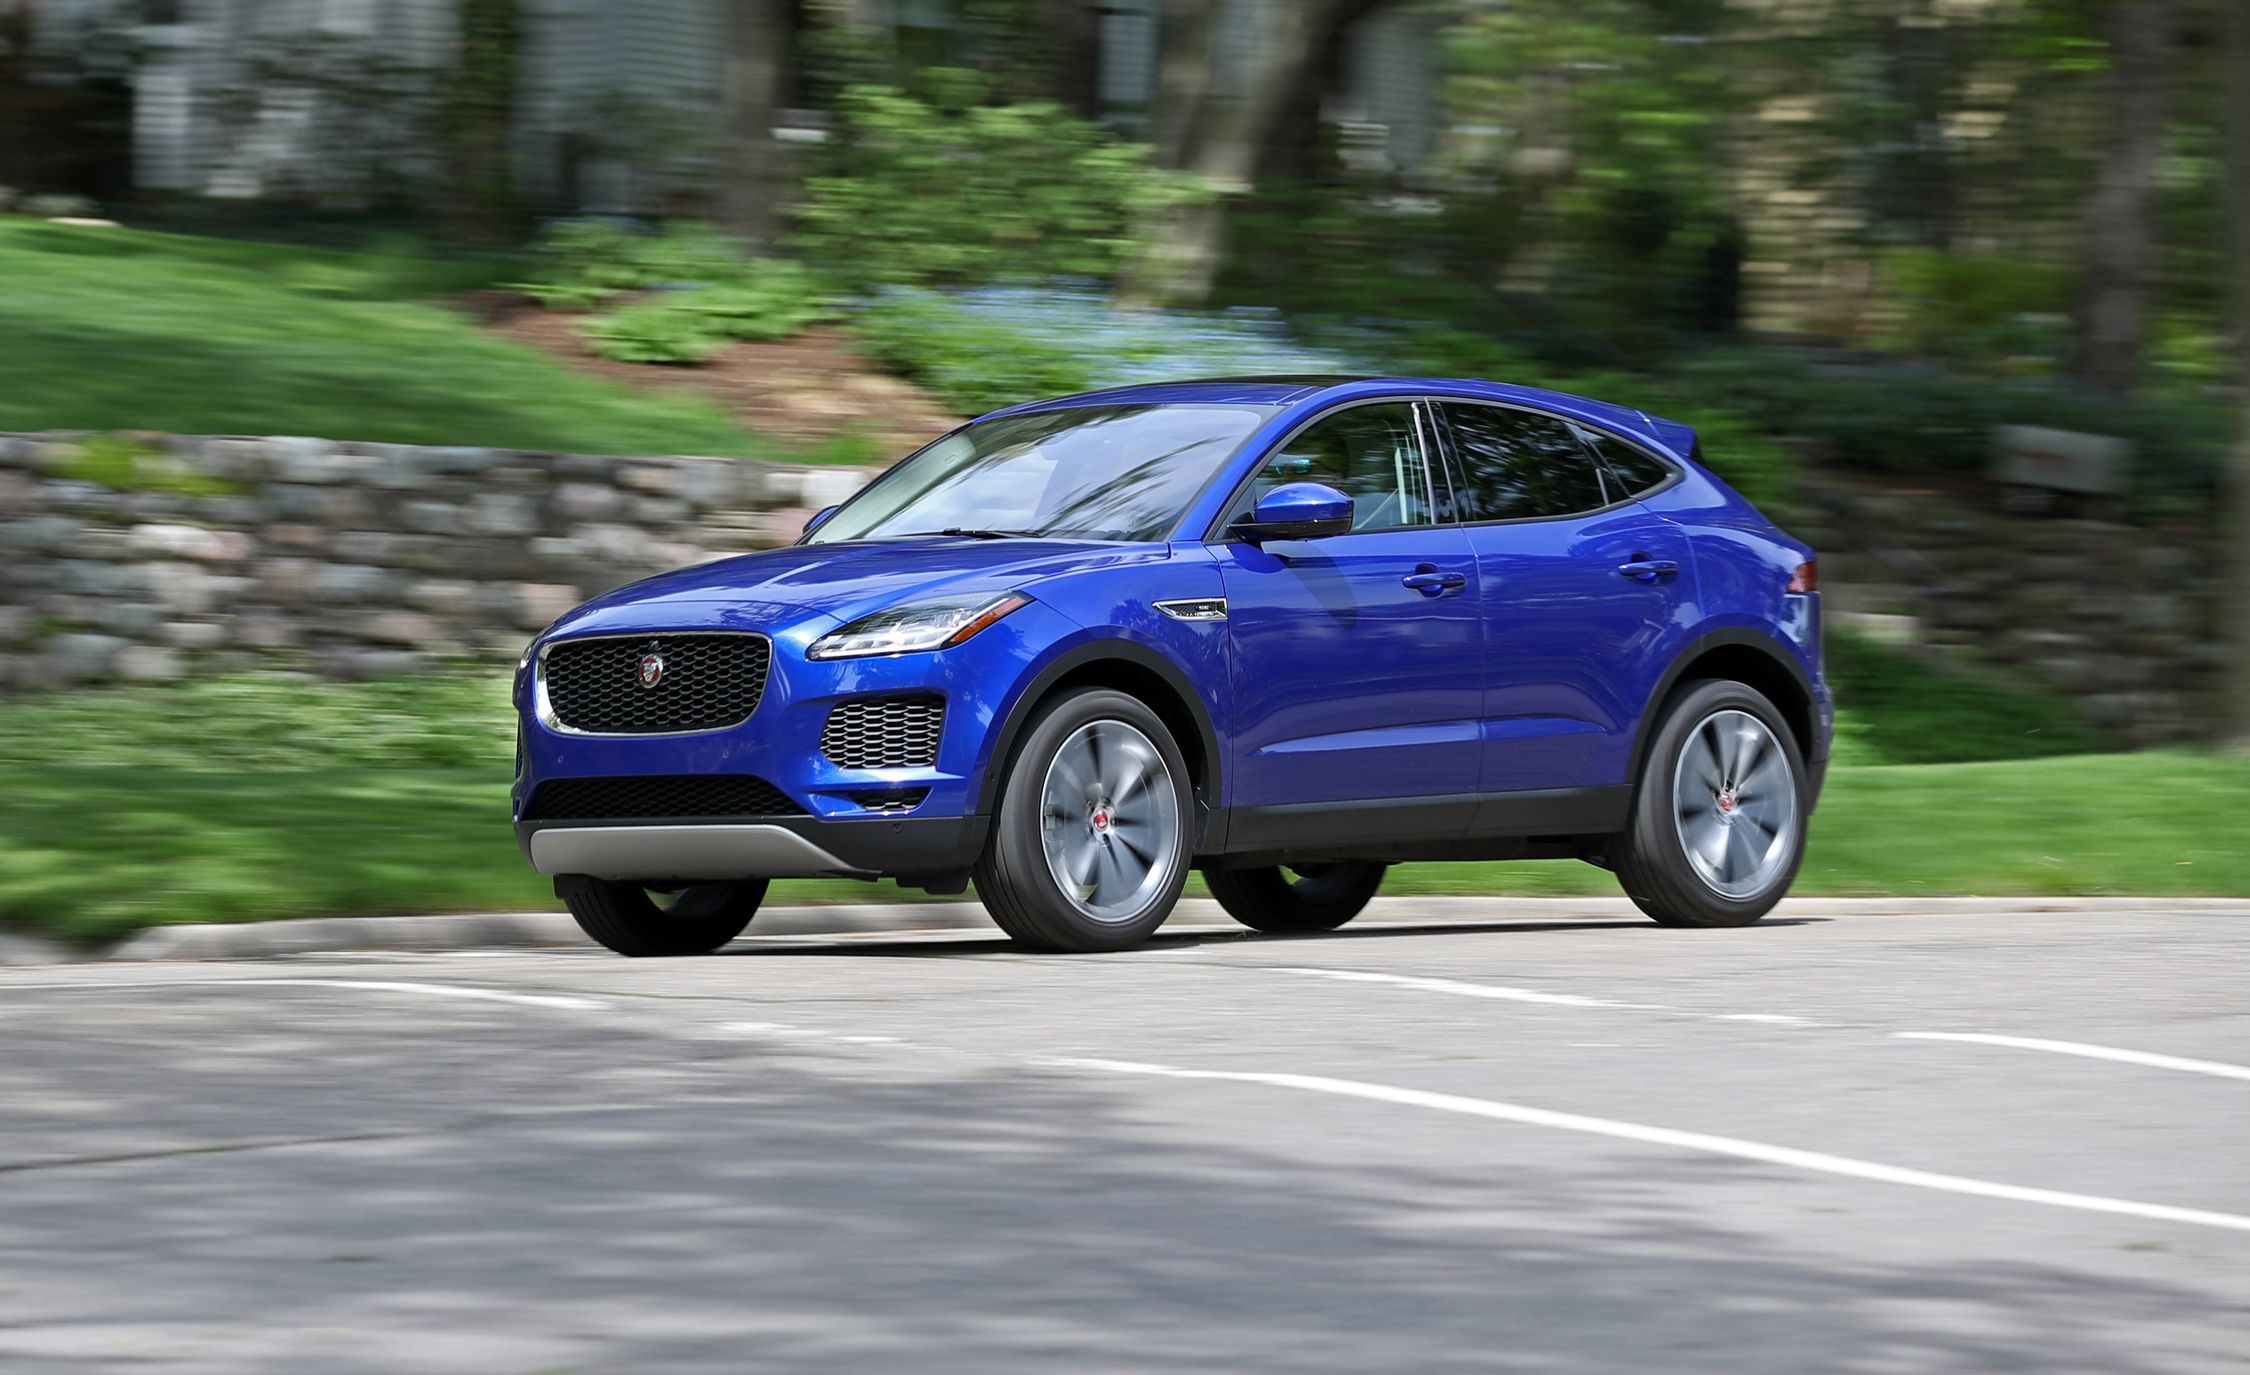 2018 jaguar e pace p250 awd tested little crossover y spendy review car and driver. Black Bedroom Furniture Sets. Home Design Ideas